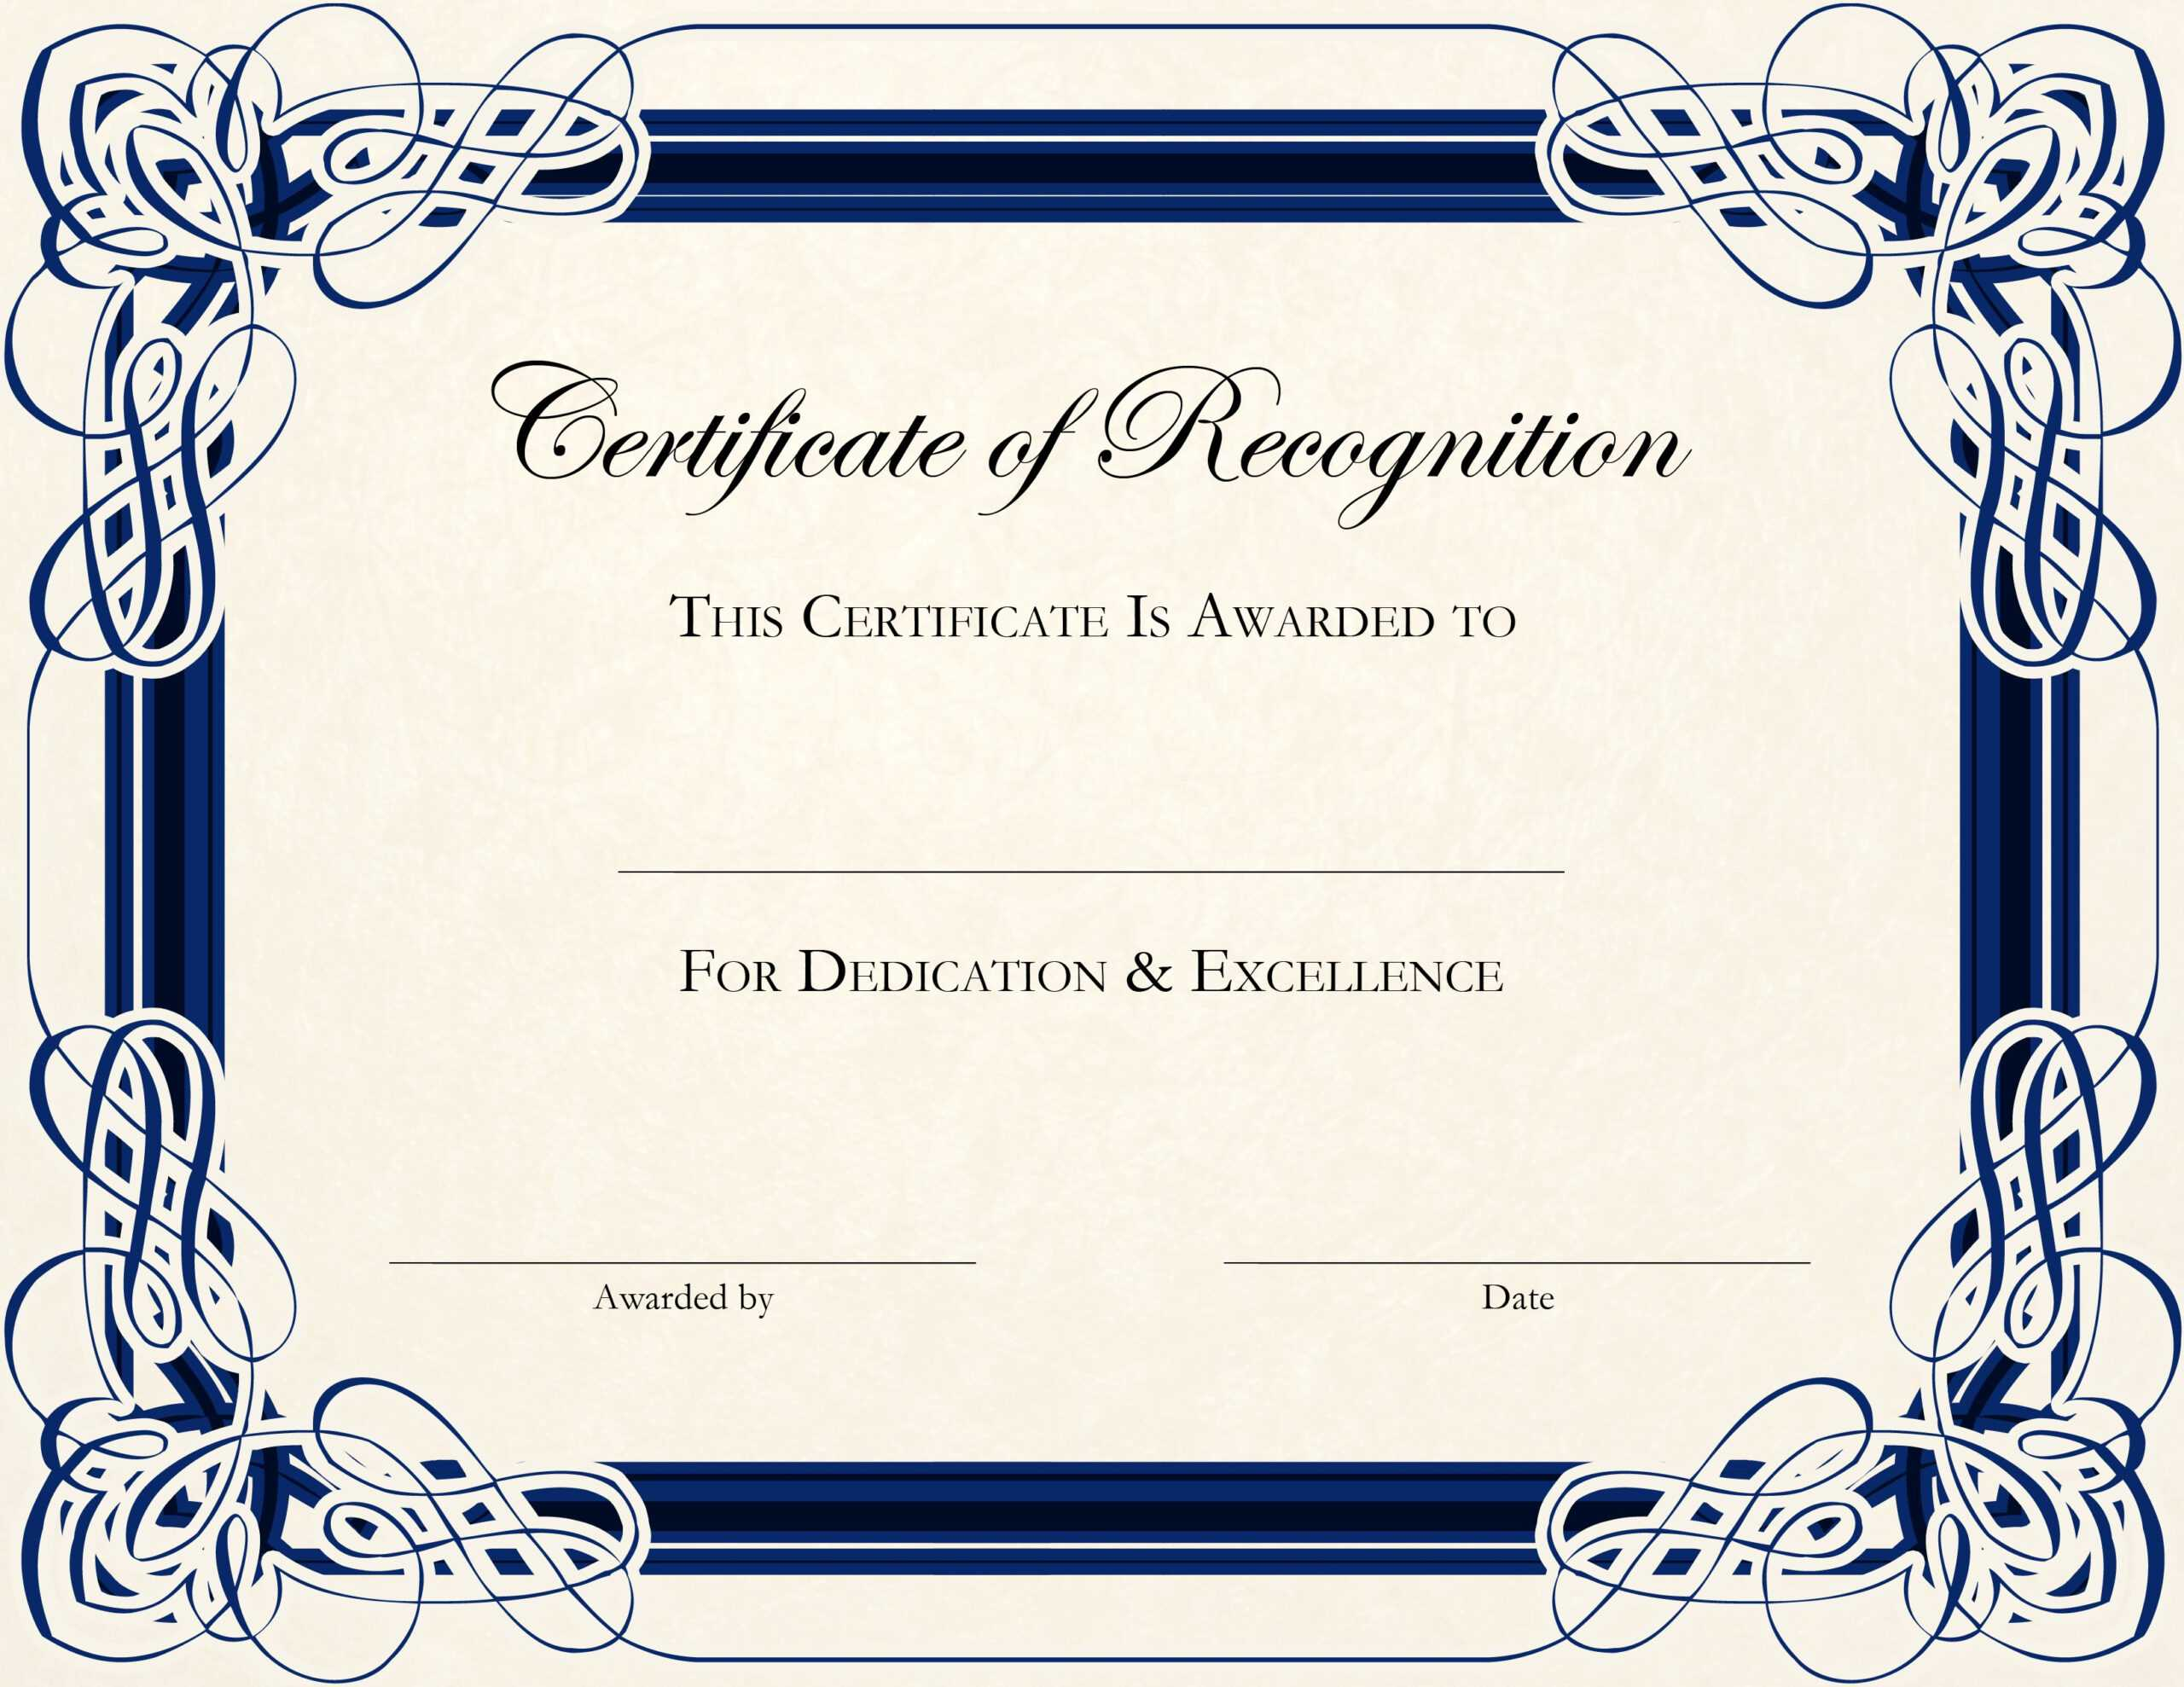 Pageant Certificate Template - Zohre.horizonconsulting.co Intended For Pageant Certificate Template